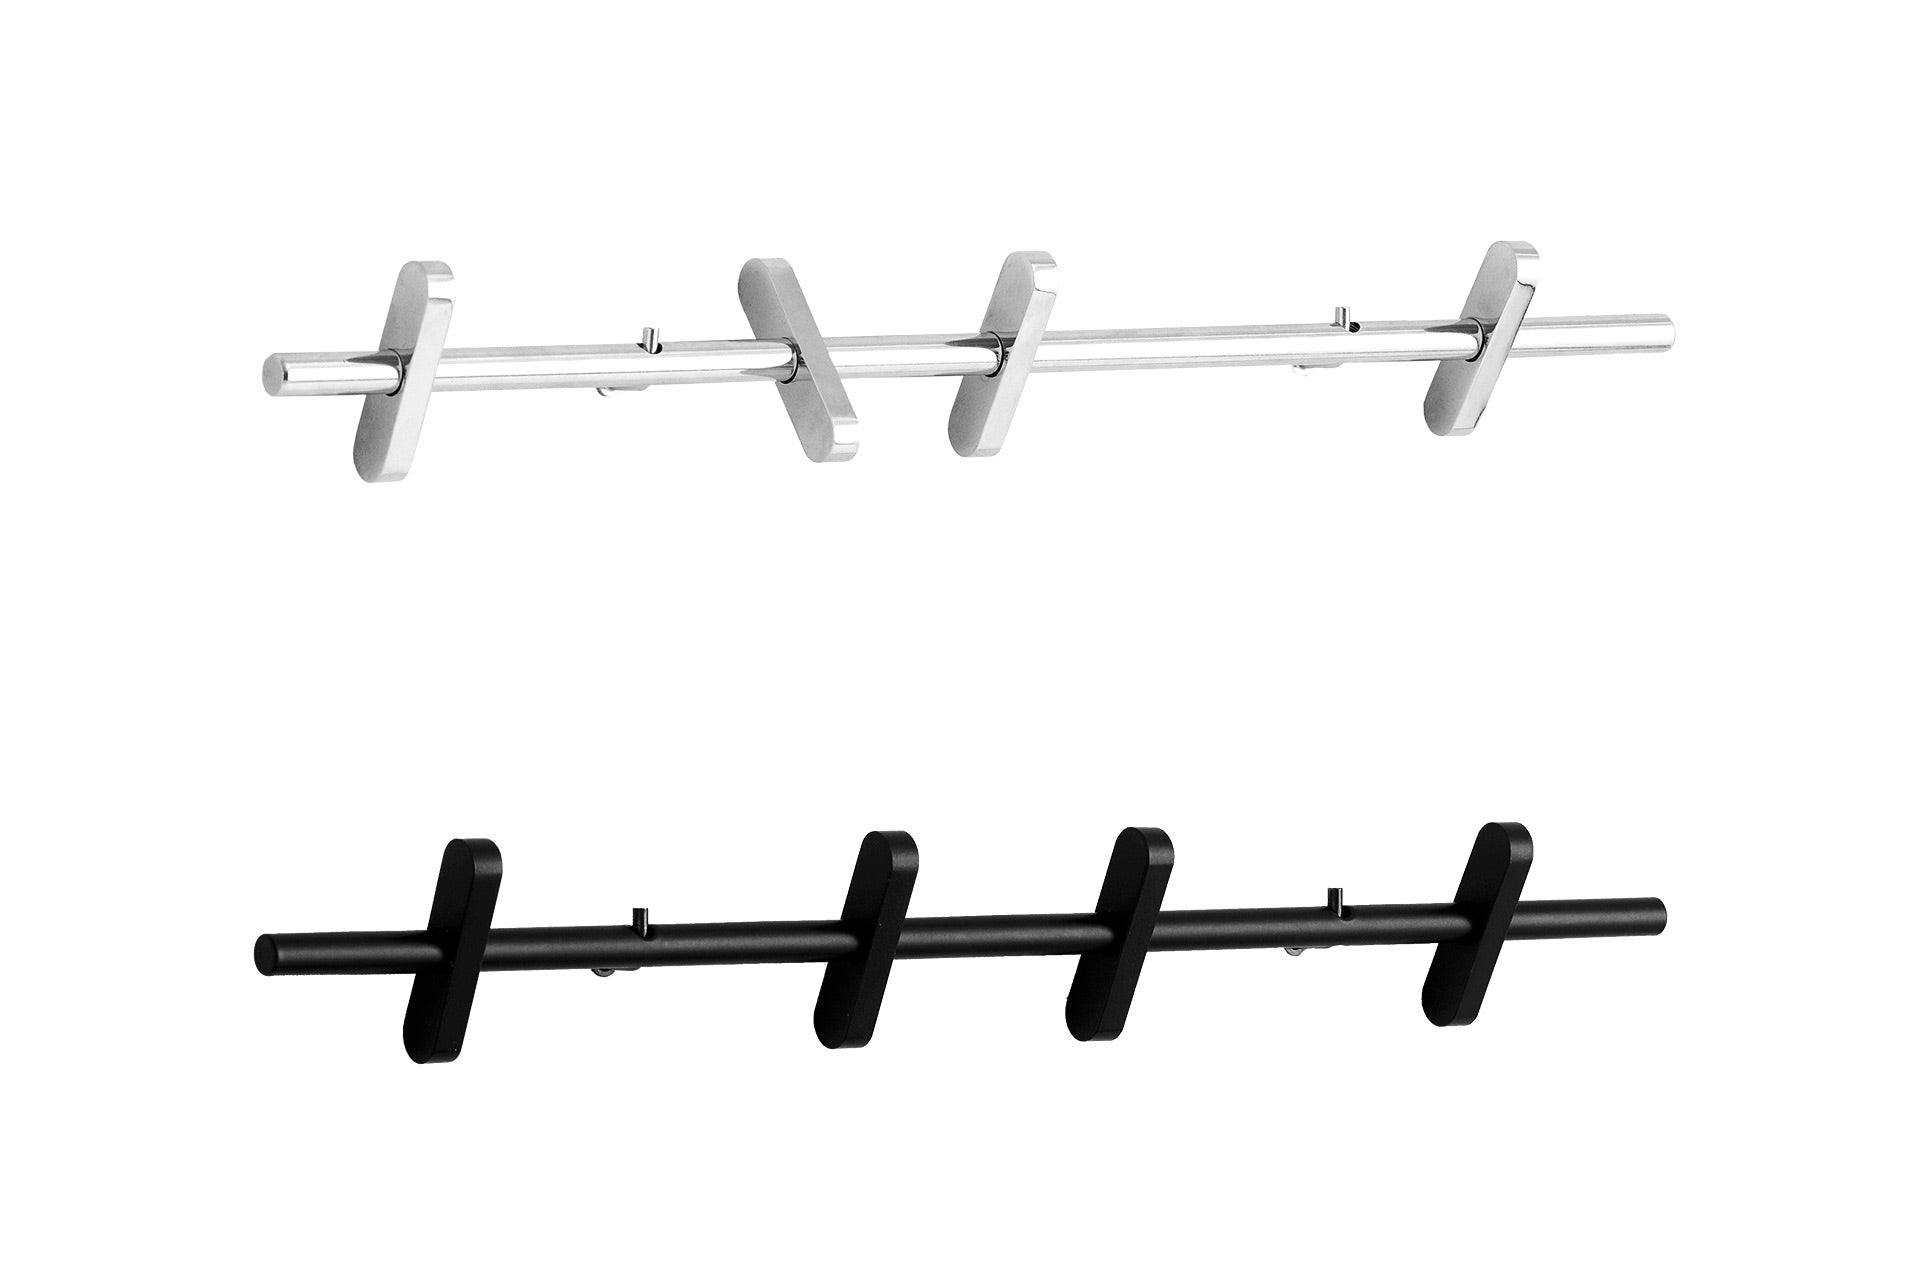 Porte-manteau COAT RACK 40cm by Moebe-métal noir ou chromé-PARIDEO Design durable